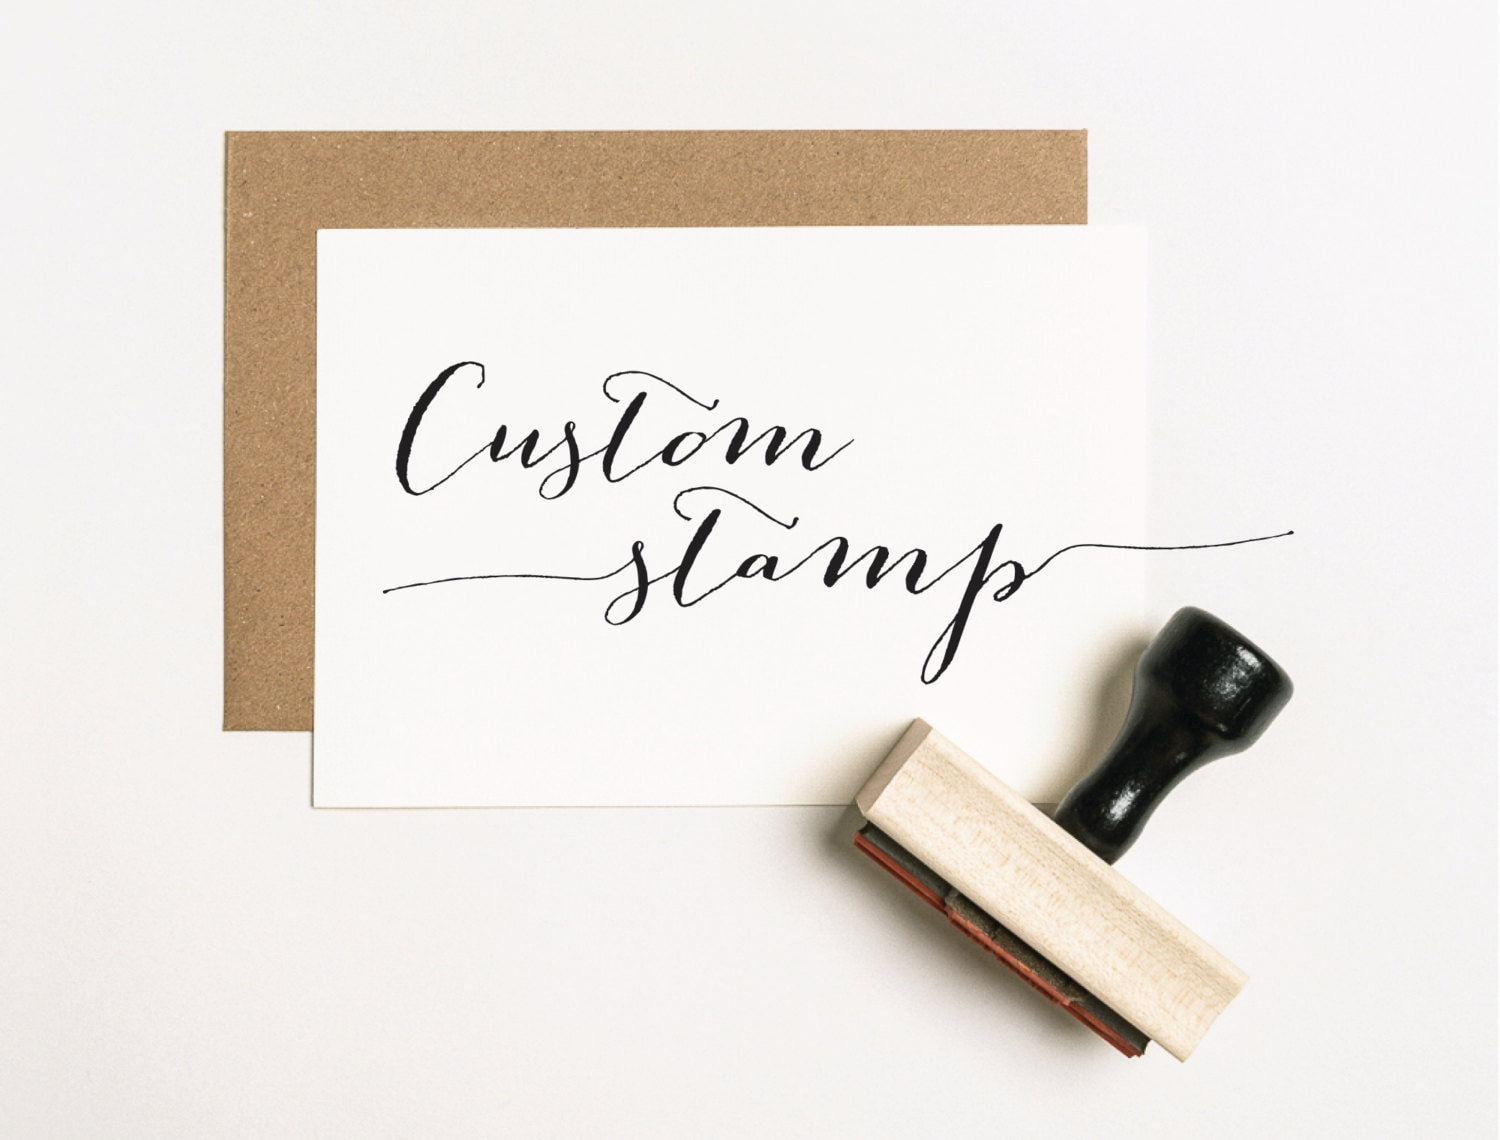 CUSTOM Rubber Stamp Custom Stamp Logo Stamp Personalized